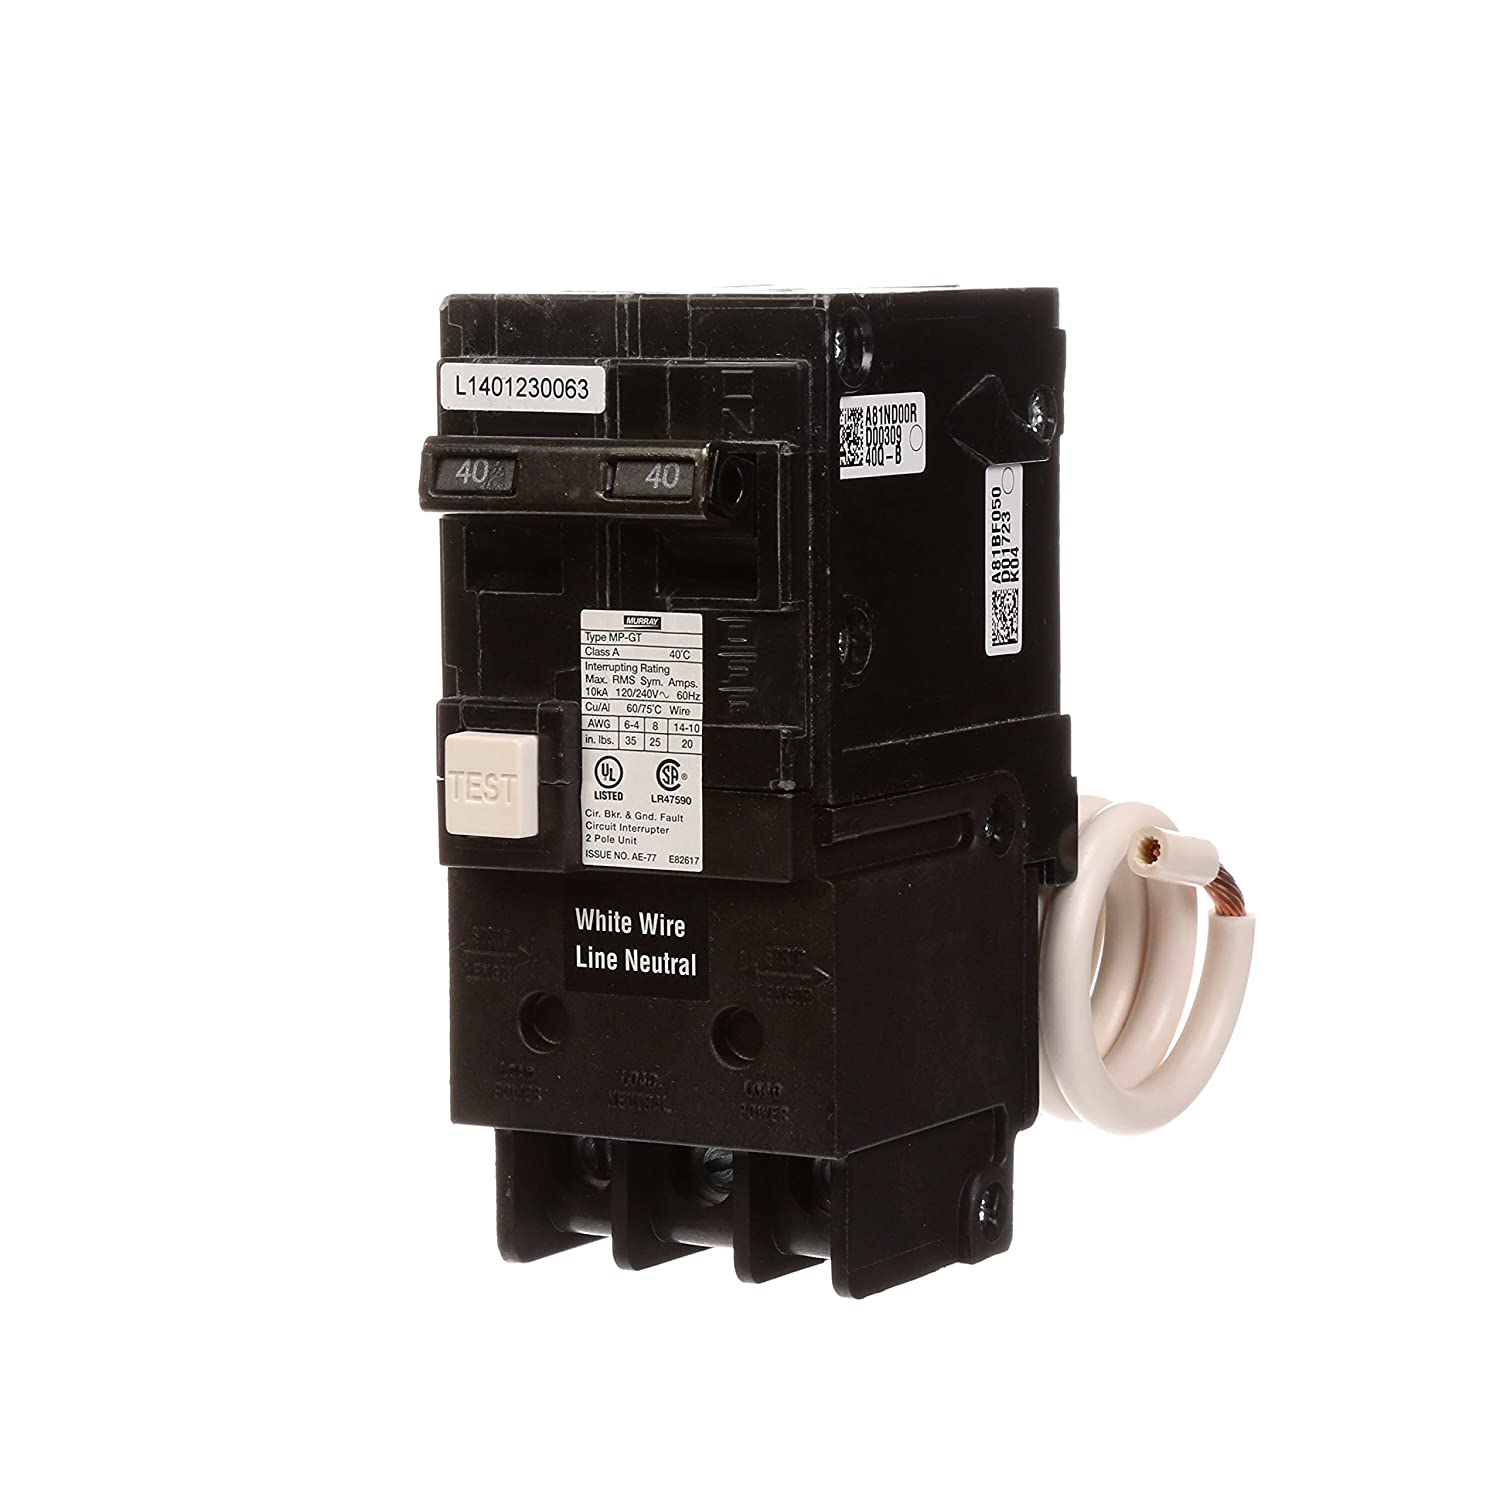 Murray MP240GFA 40 Amp 2-Pole Gfci Circuit Breaker with Self Test & Lockout Feature Siemens